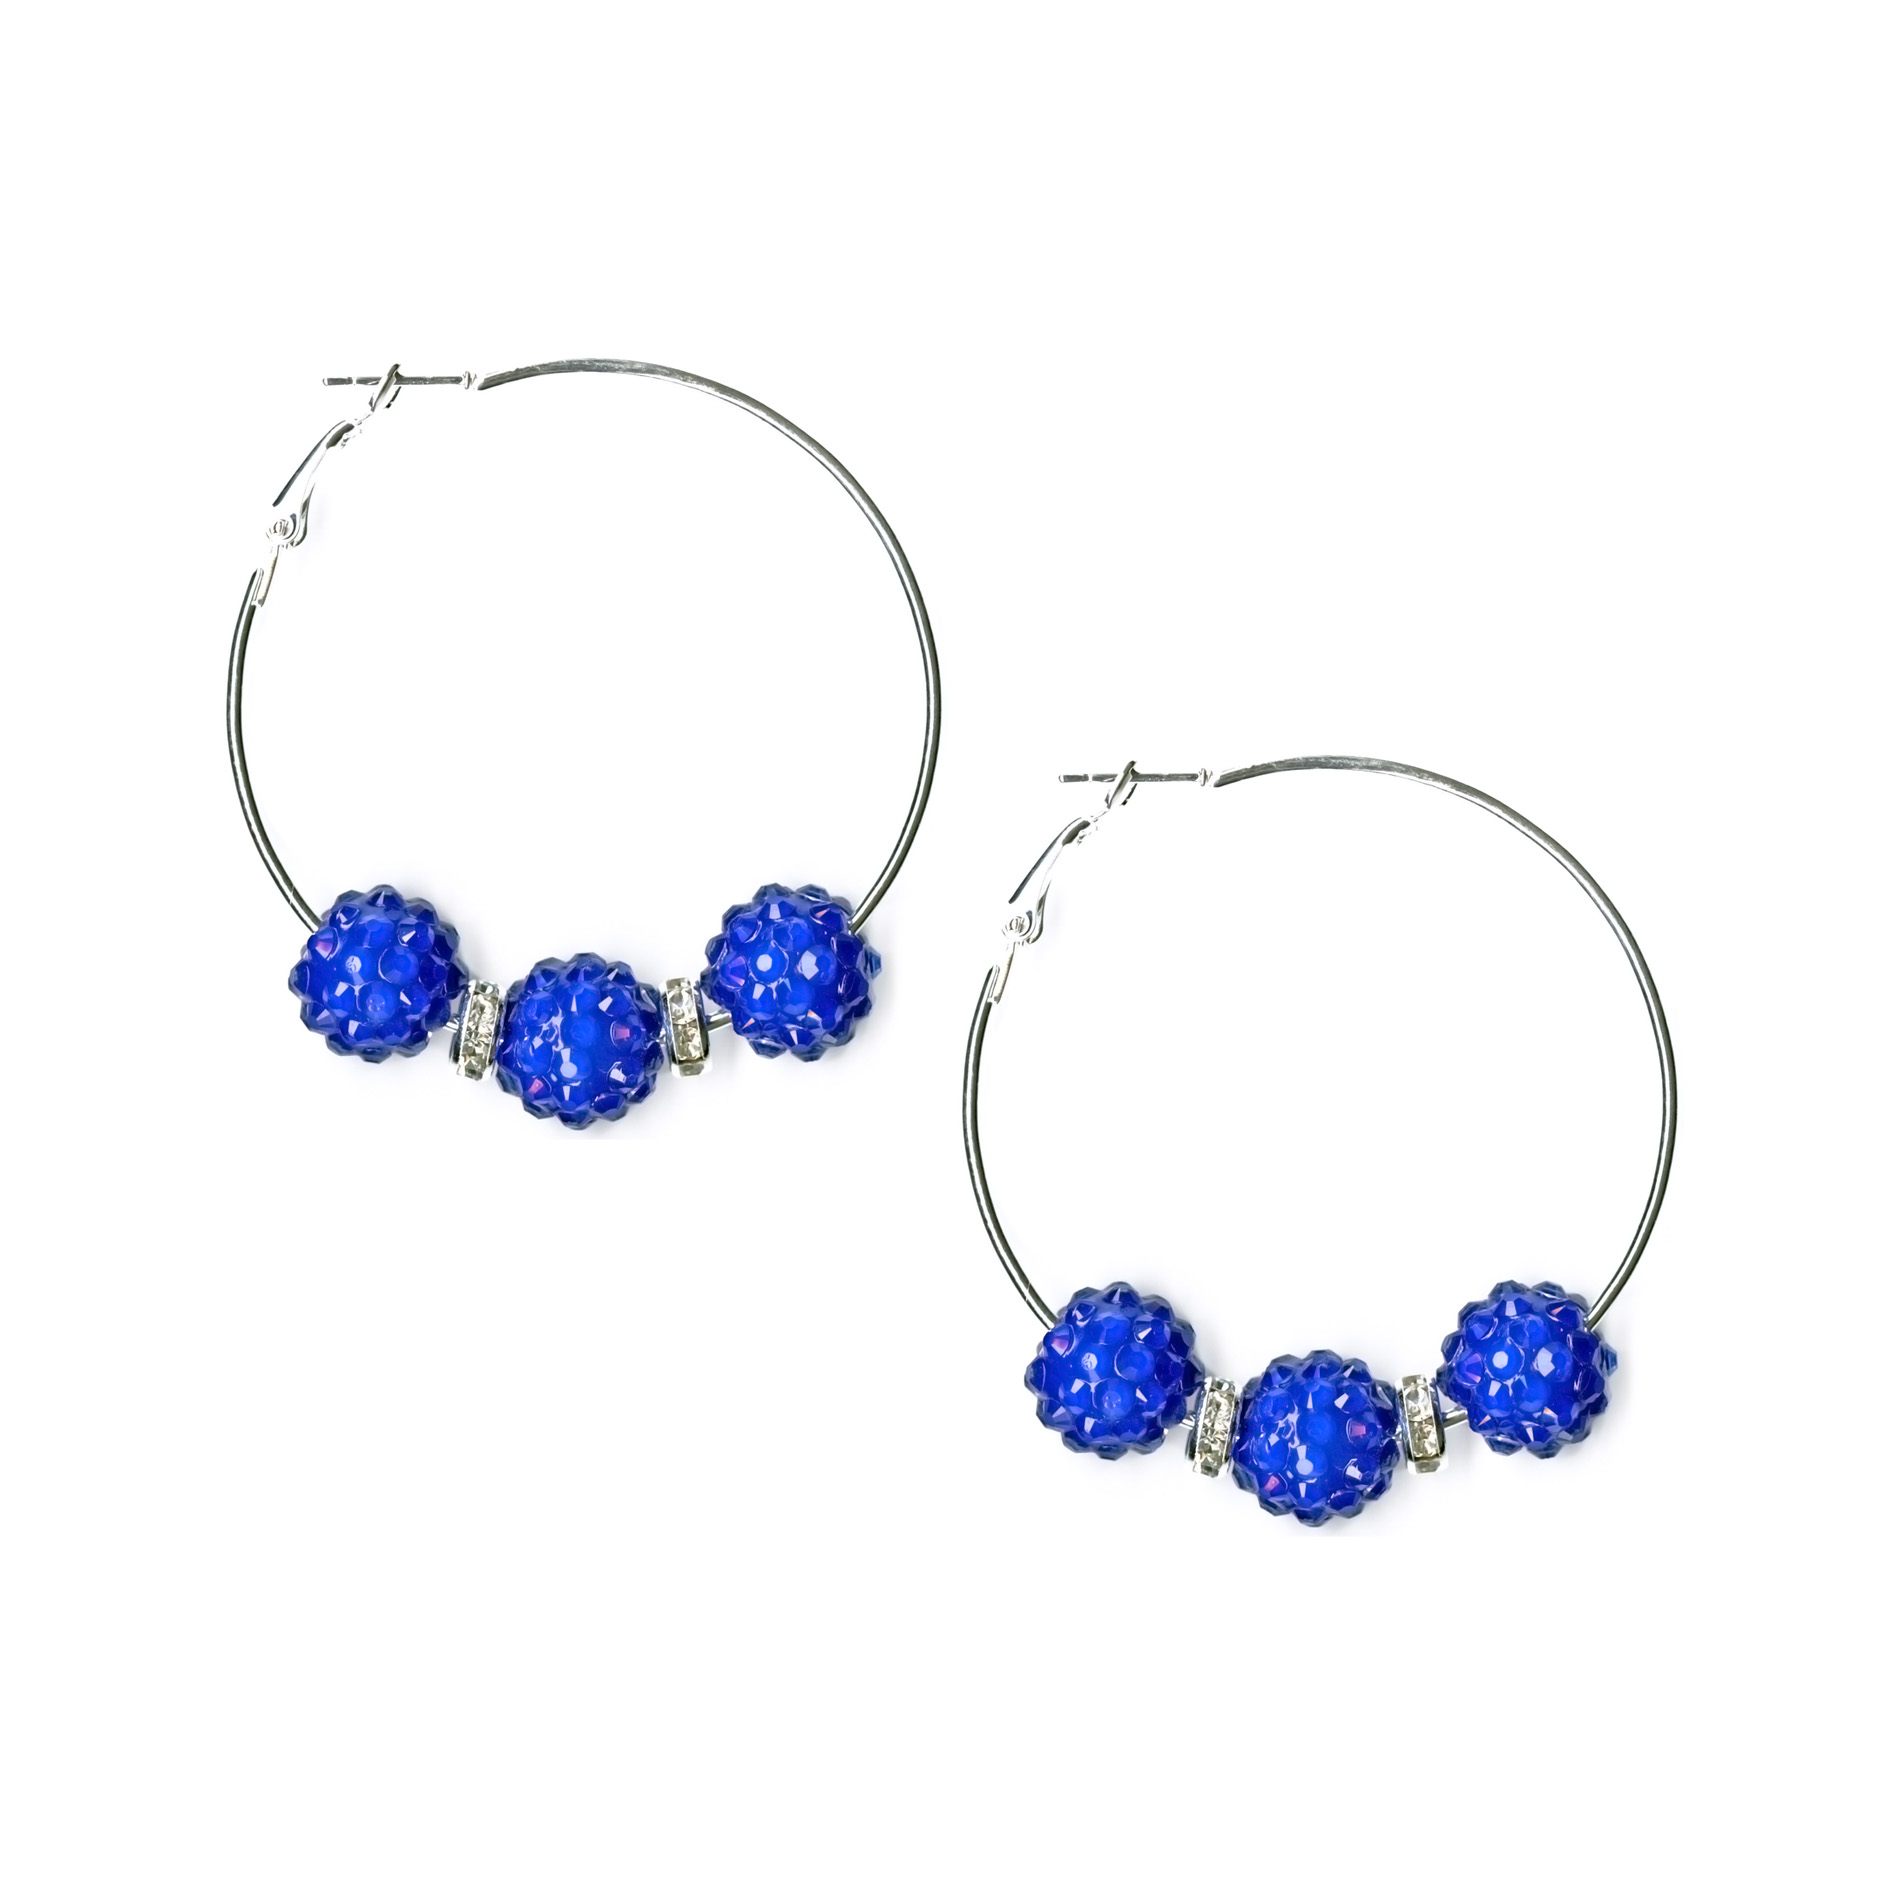 Women's Glitterati Hoop Earrings